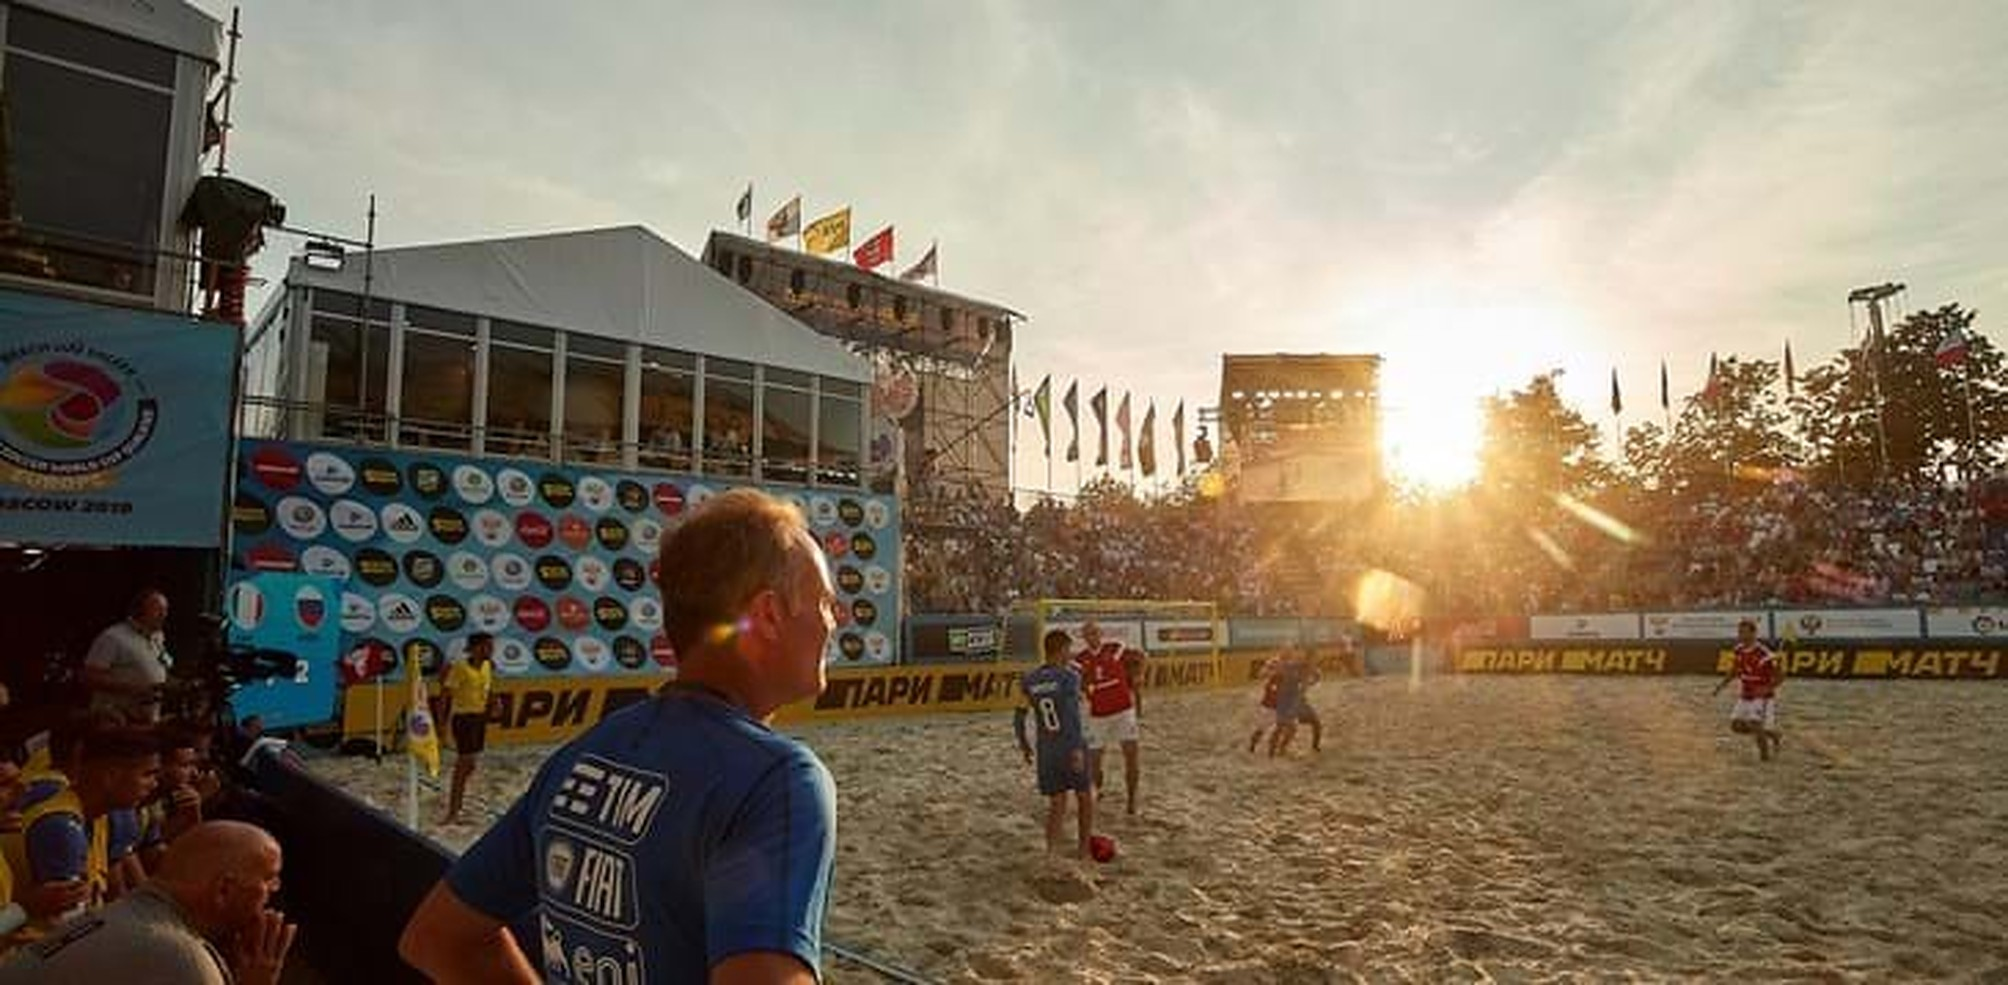 euro-beach-soccer-league-italia-esordio-ok-contro-la-germania